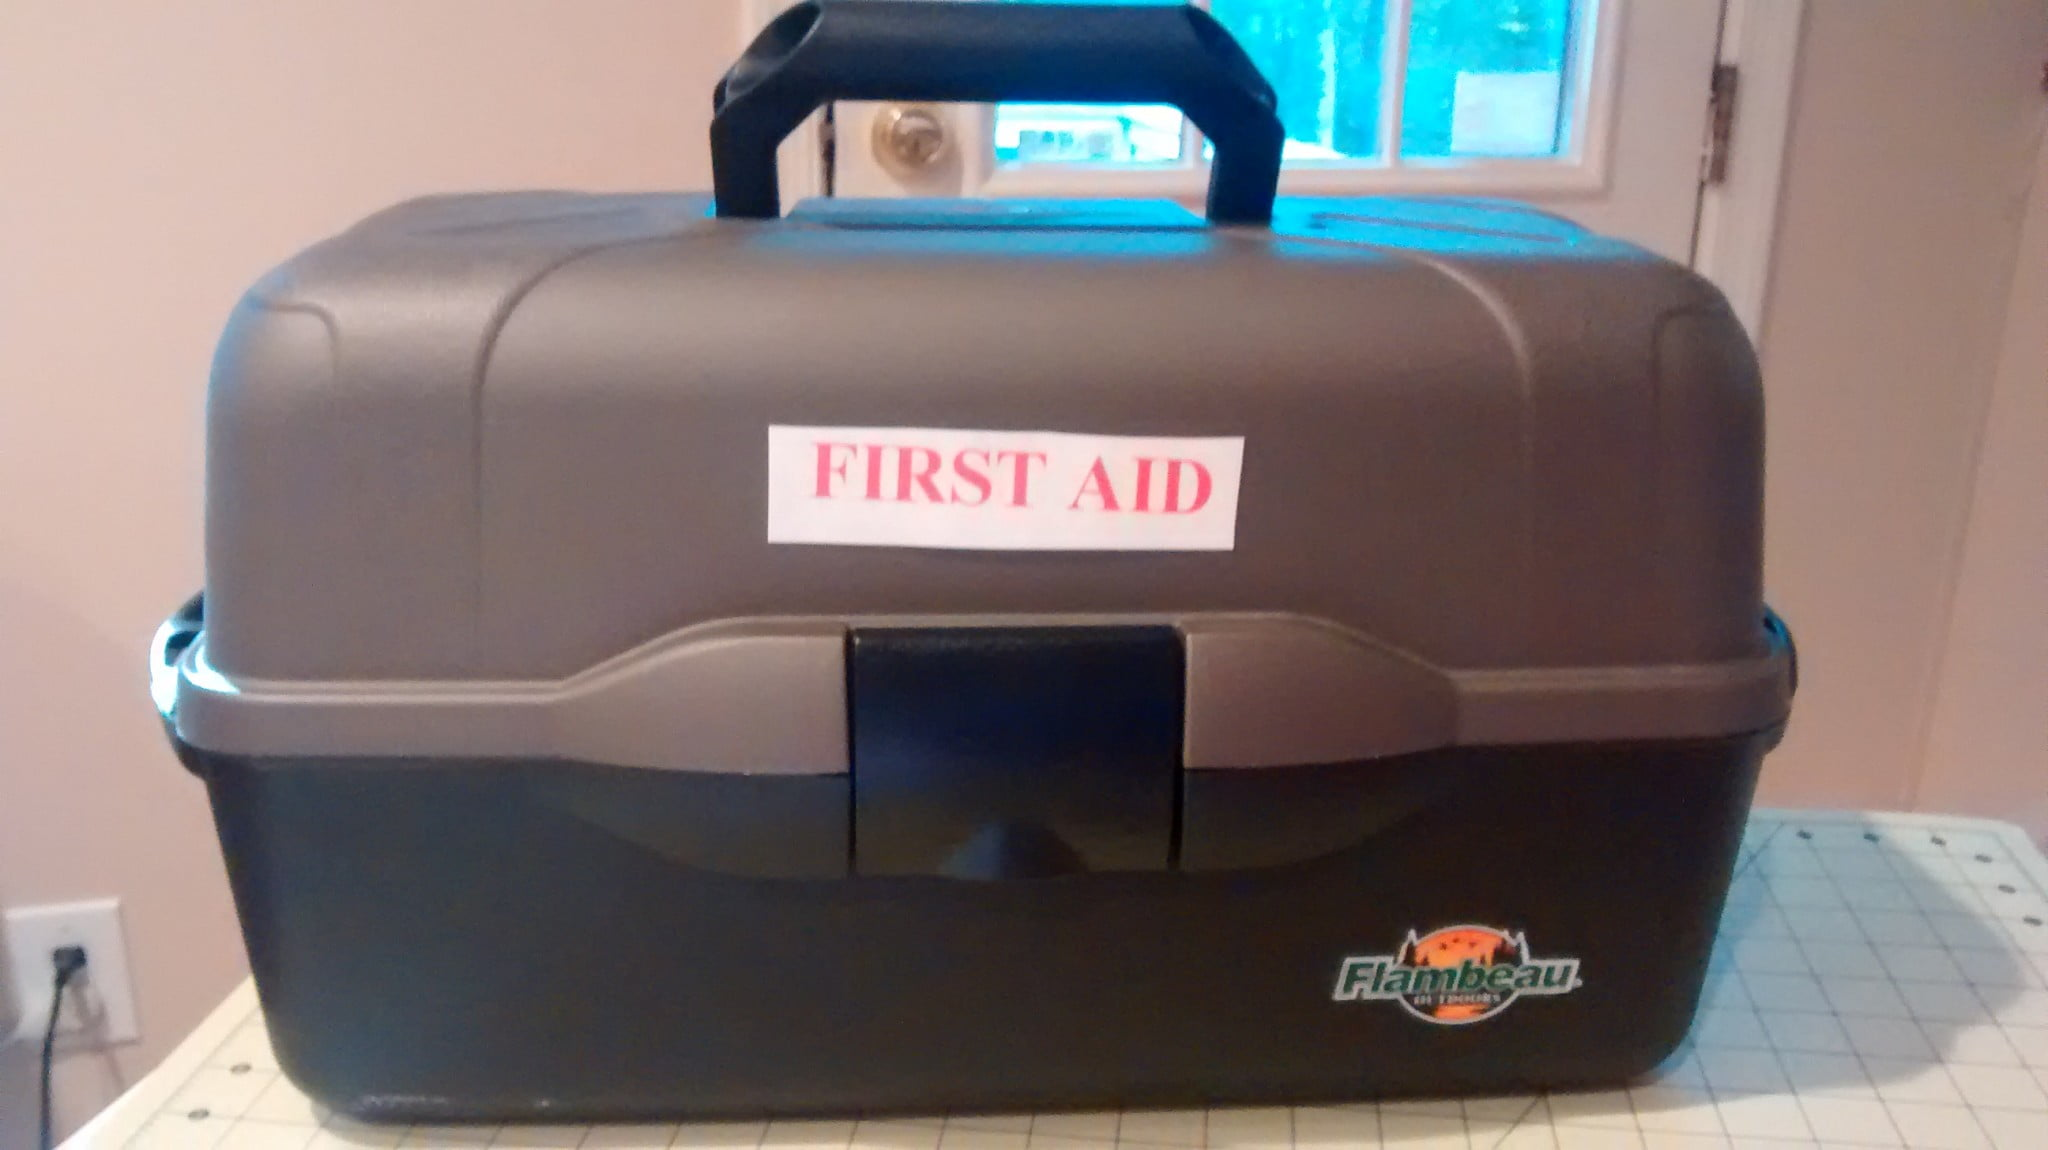 Making a First Aid Kit